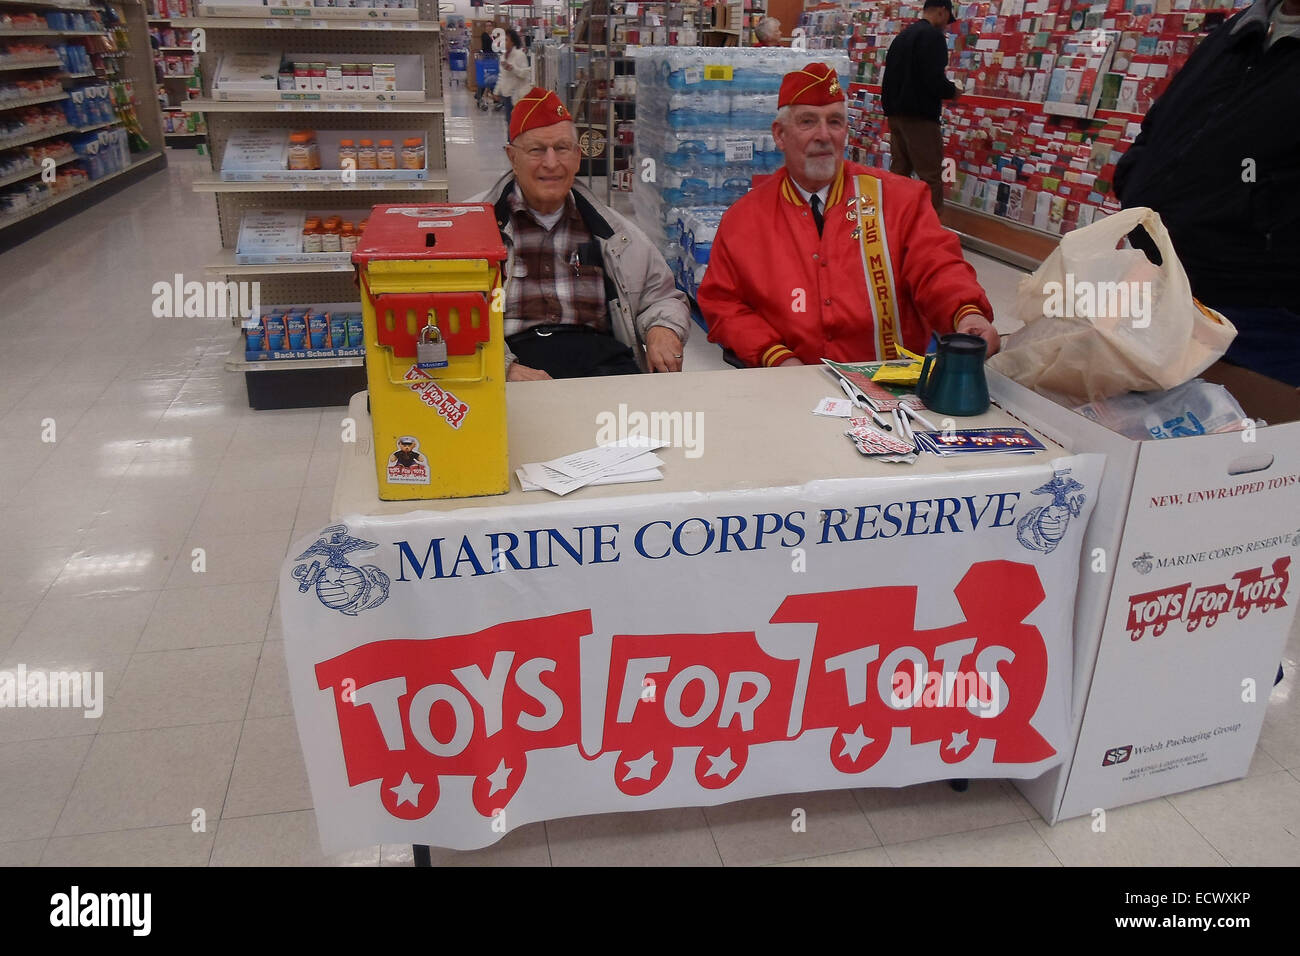 Toys For Tots Washington State : Marine corps toys for tots stock photos